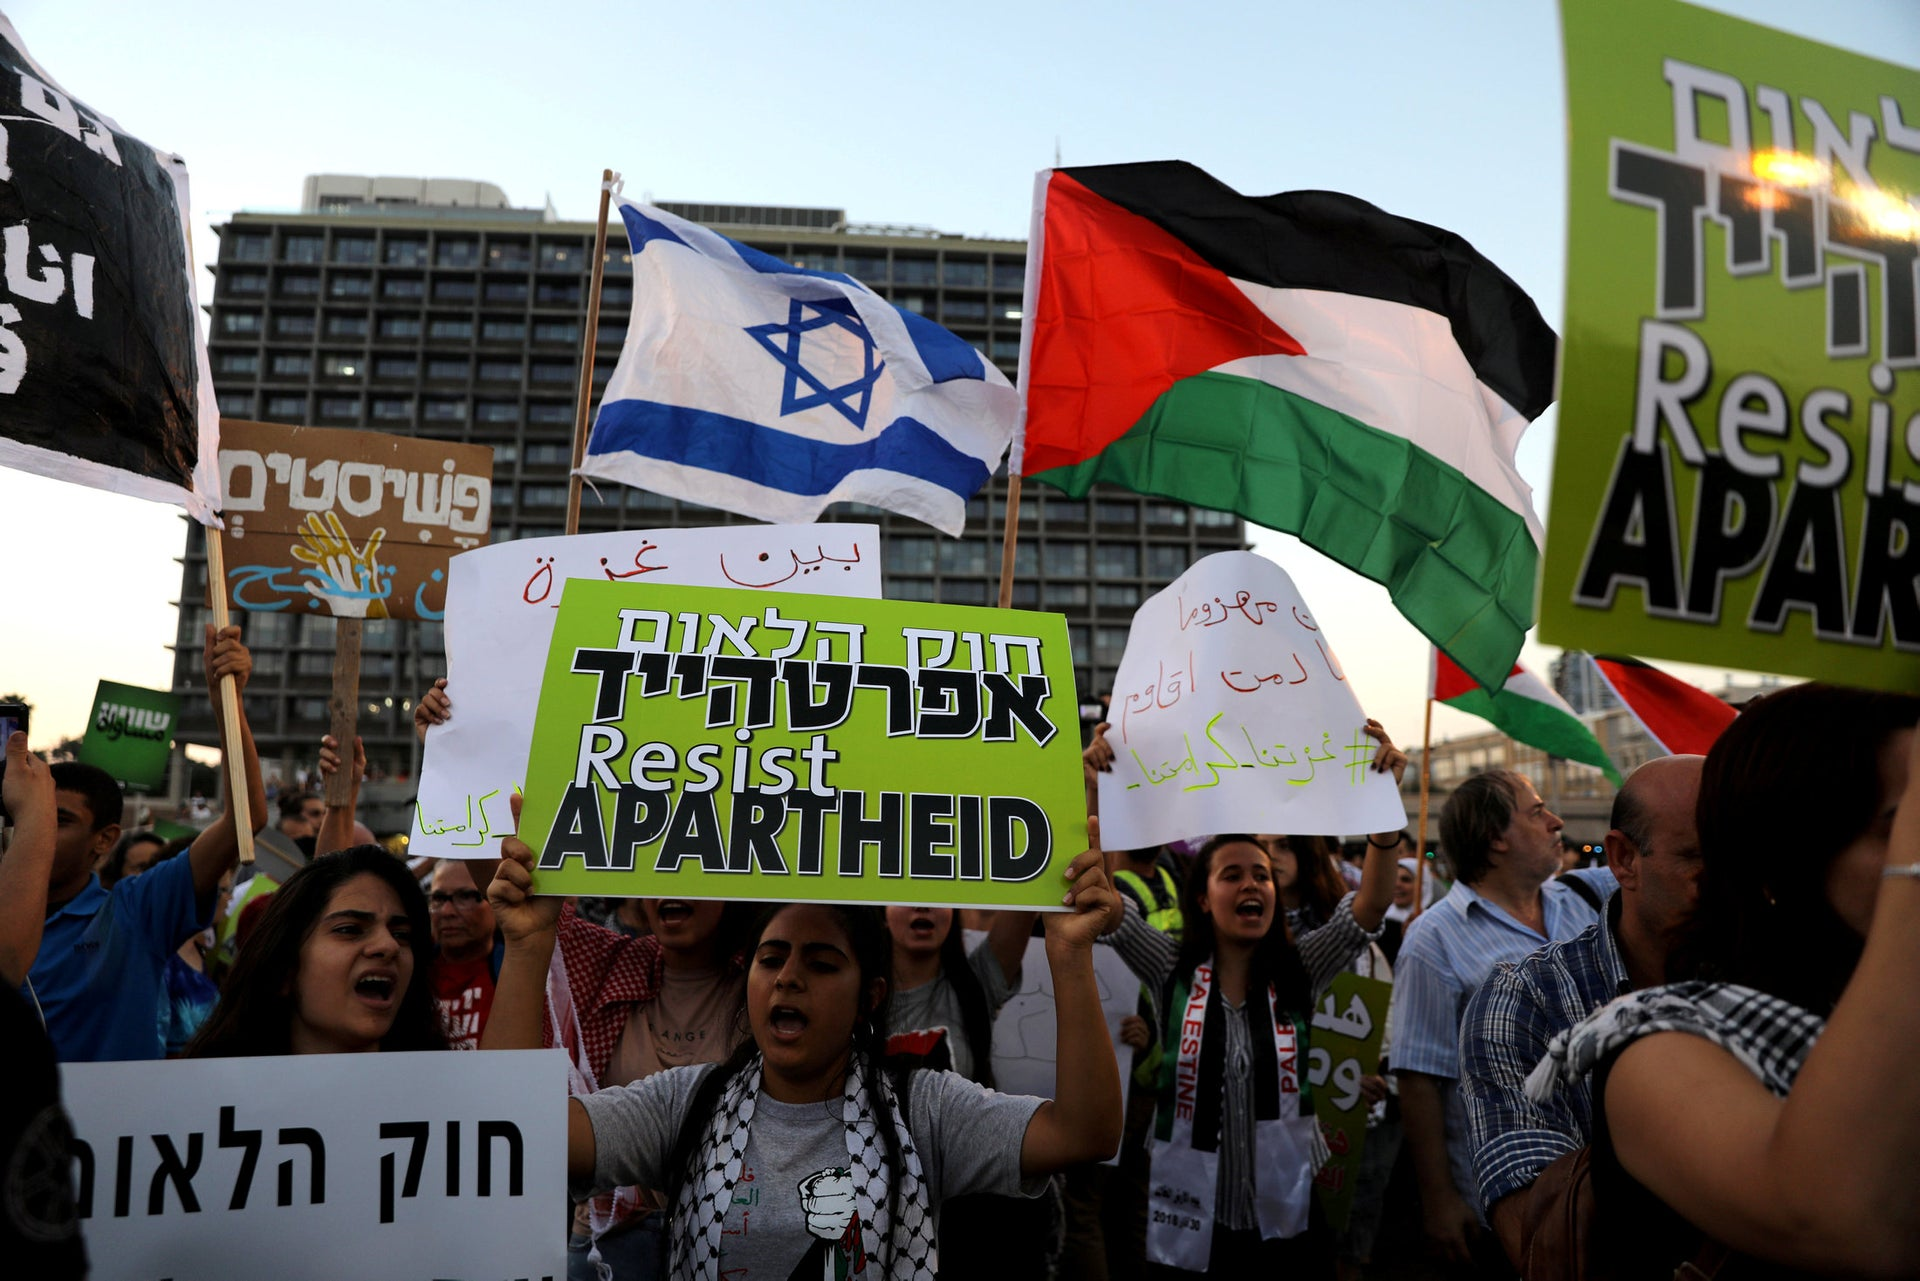 Israeli Arabs and their supporters take part in a rally to protest against Jewish nation-state law in Rabin square in Tel Aviv, Israel  August 11, 2018.